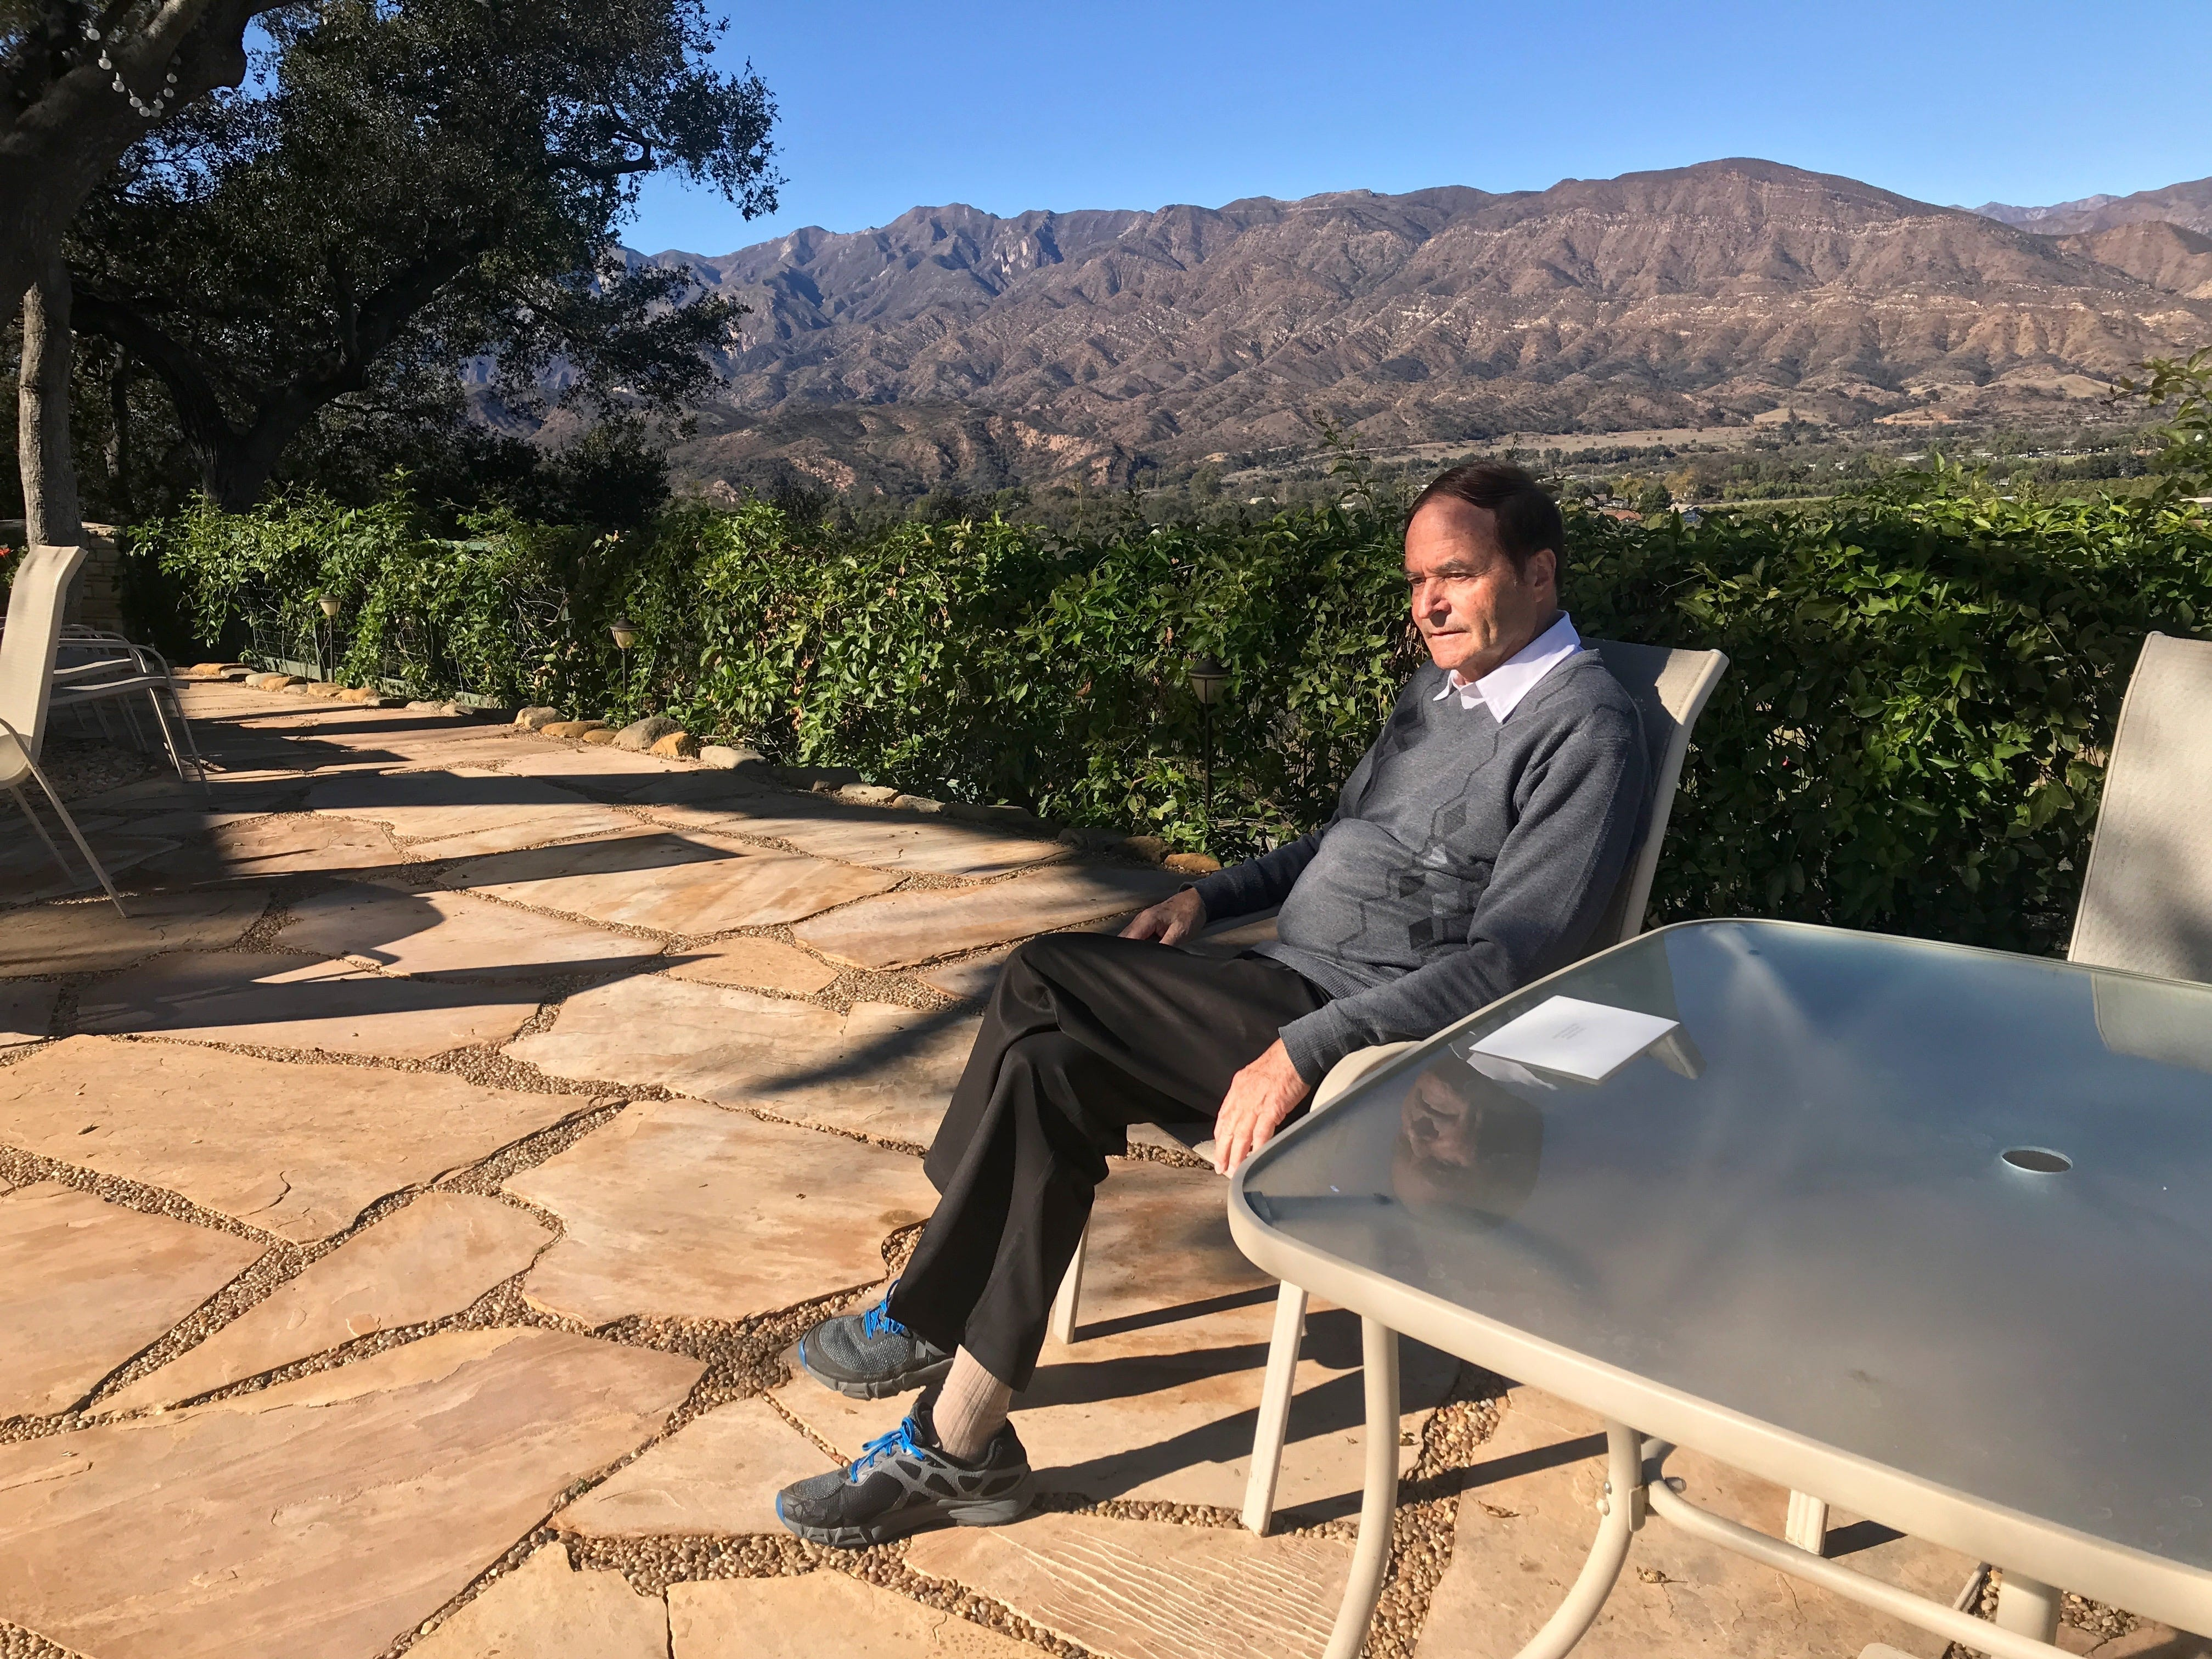 Ojai Retreat Executive Director Ulrich Brugger sits on a terrace overlooking the mountains at the lodging facility and cultural center.